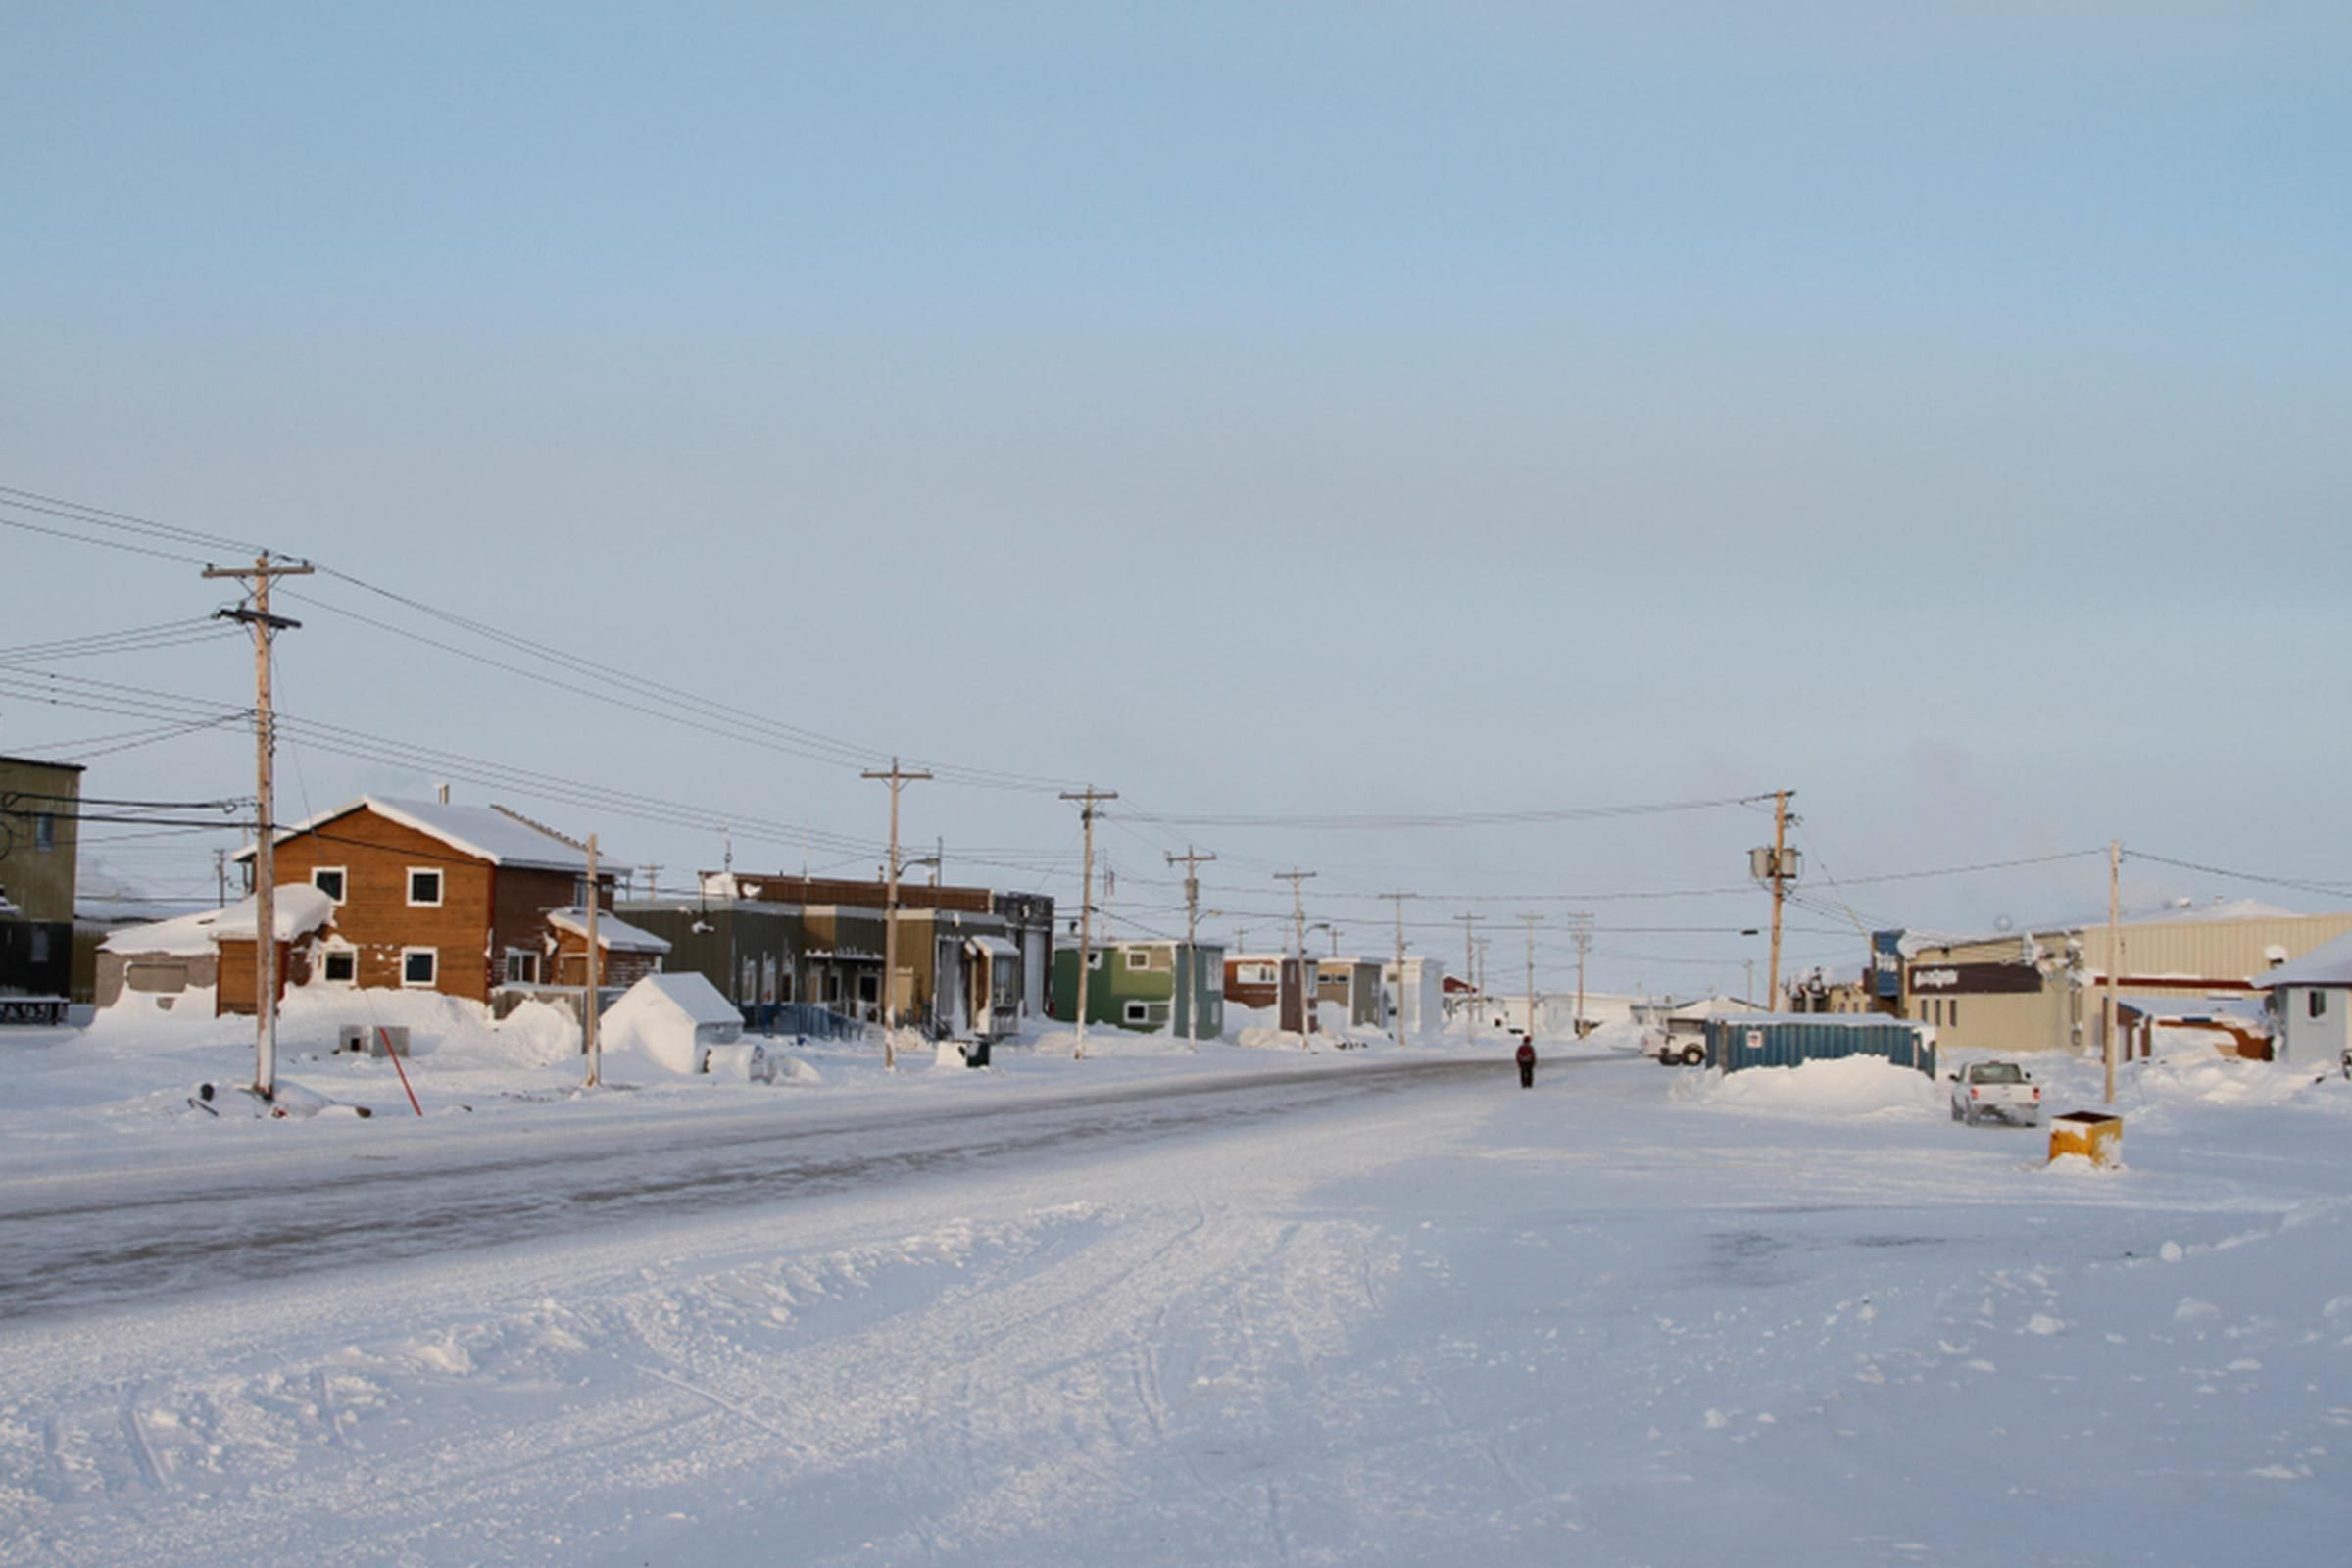 The closest inhabited town to the North Pole